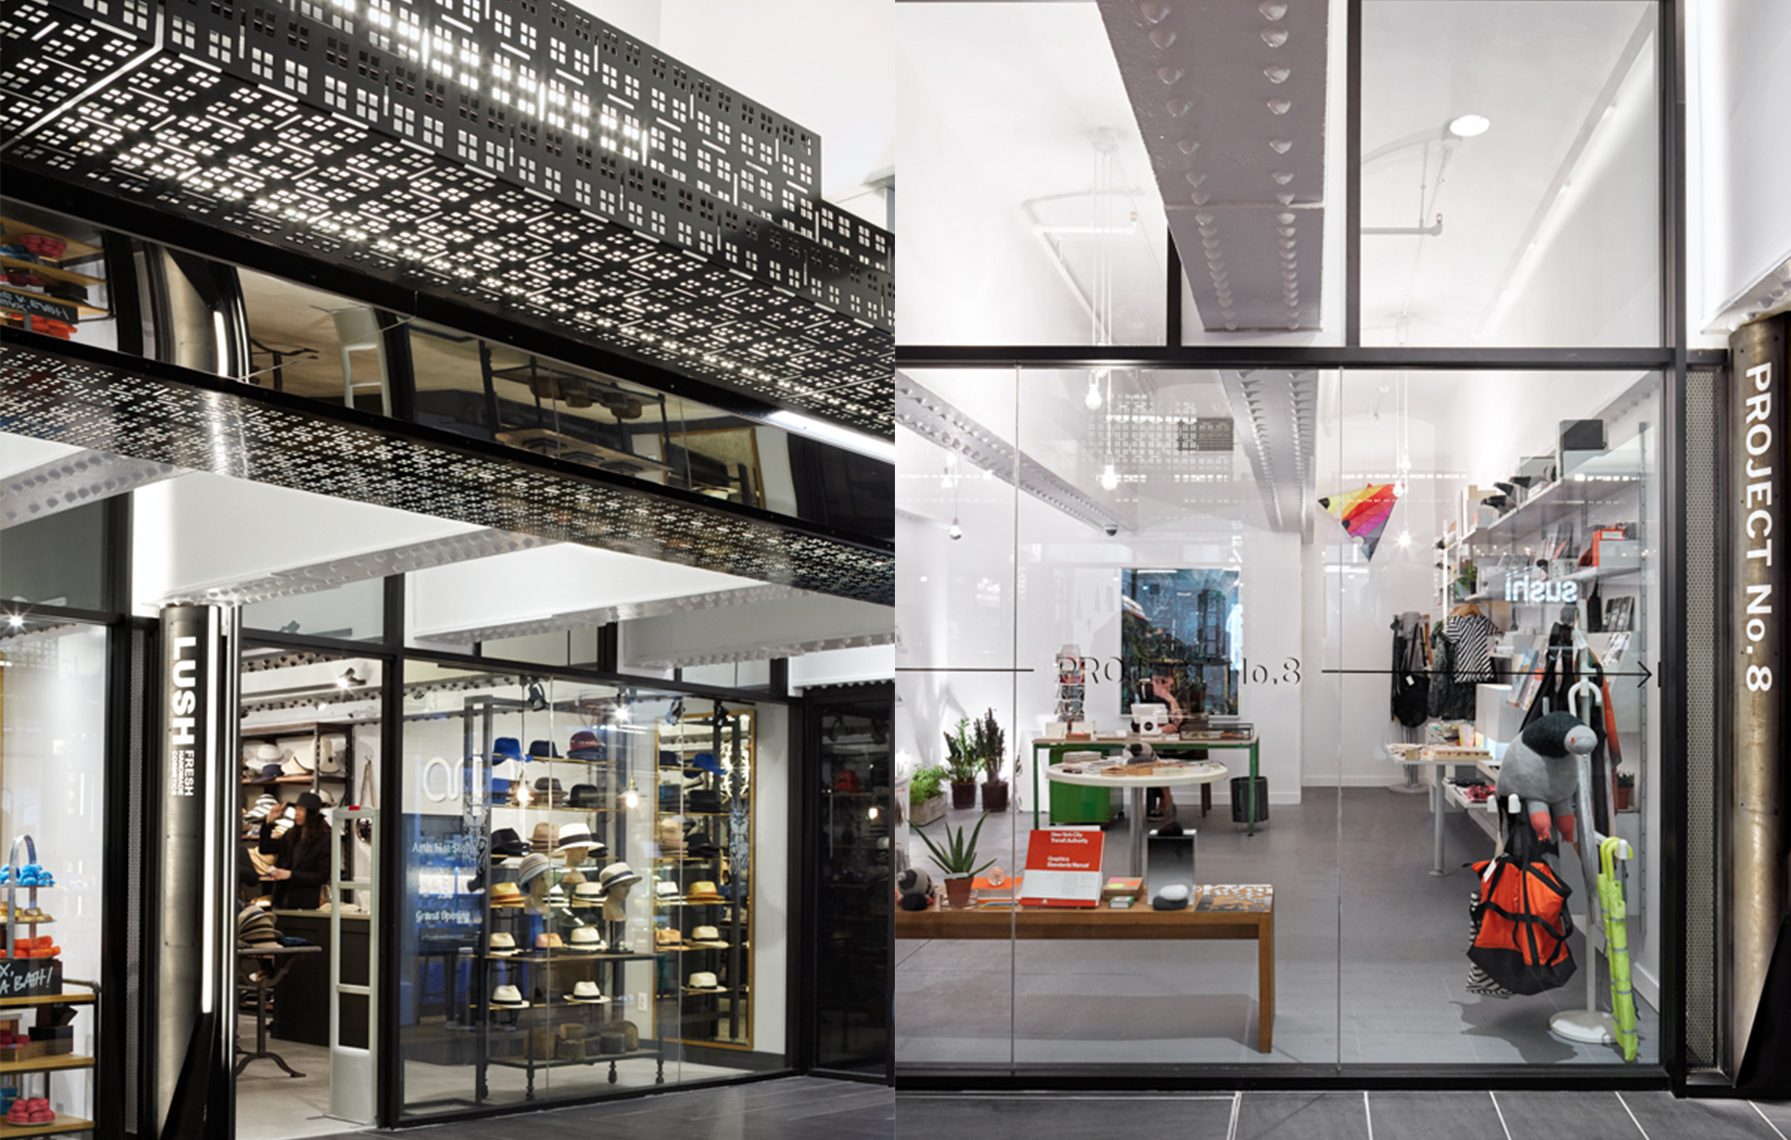 Turnstyle Underground Market Flint and Kent Alex Bates Retail Consulting Ty Cole Project no.8 image